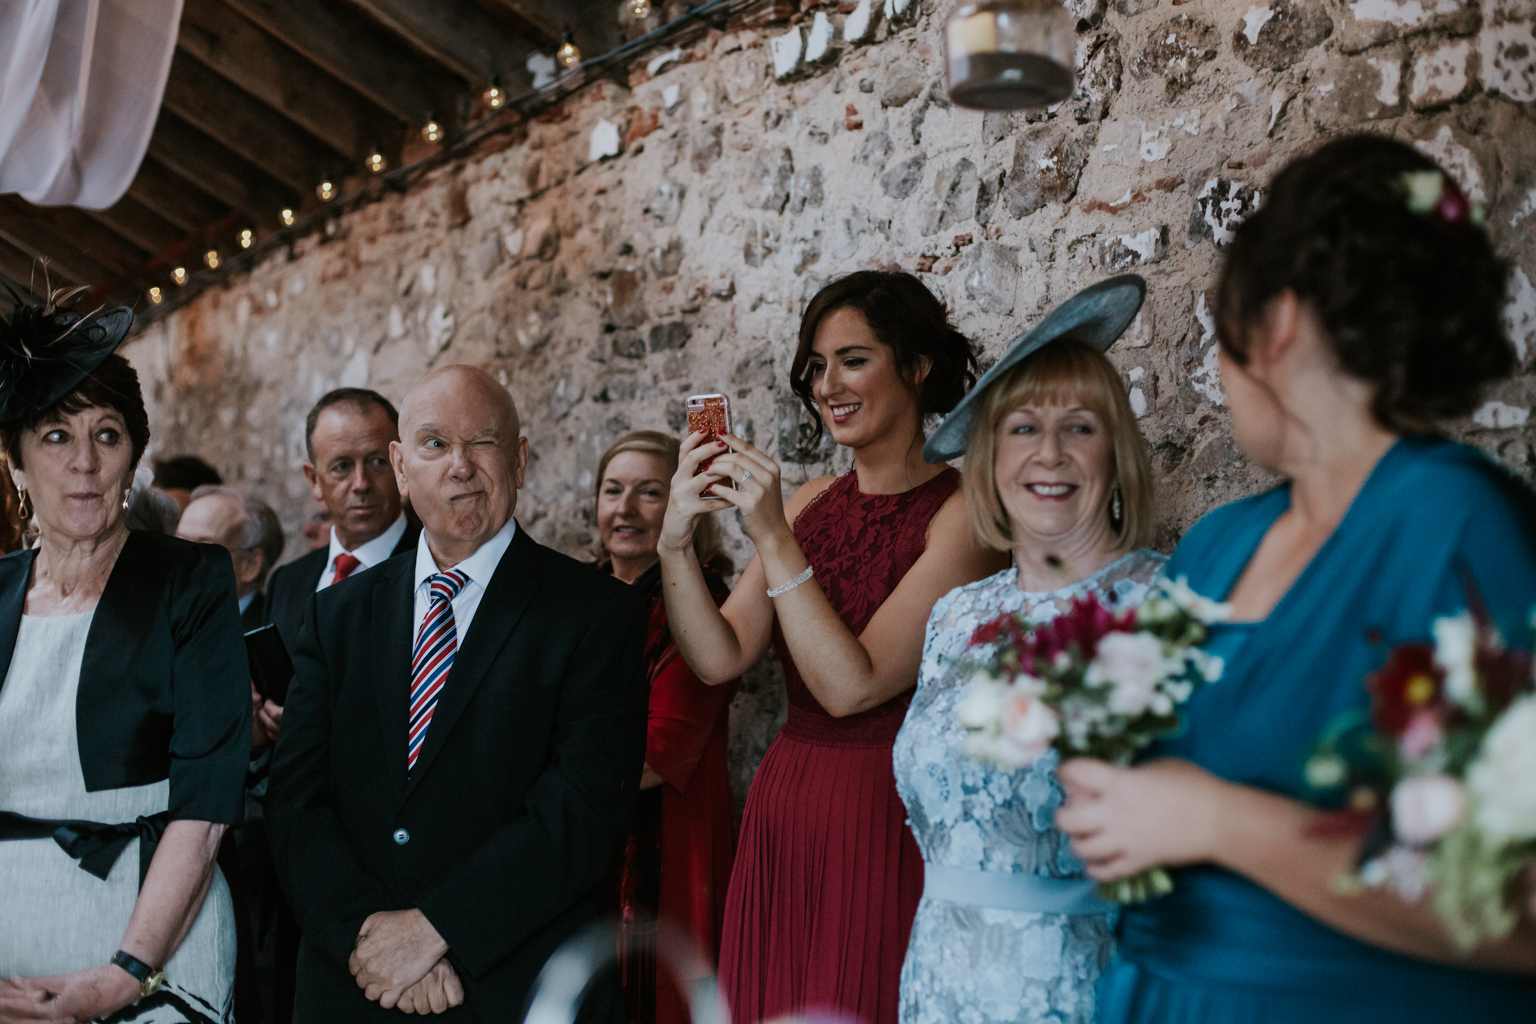 Funny guests at the wedding ceremony at the Harelaw farm